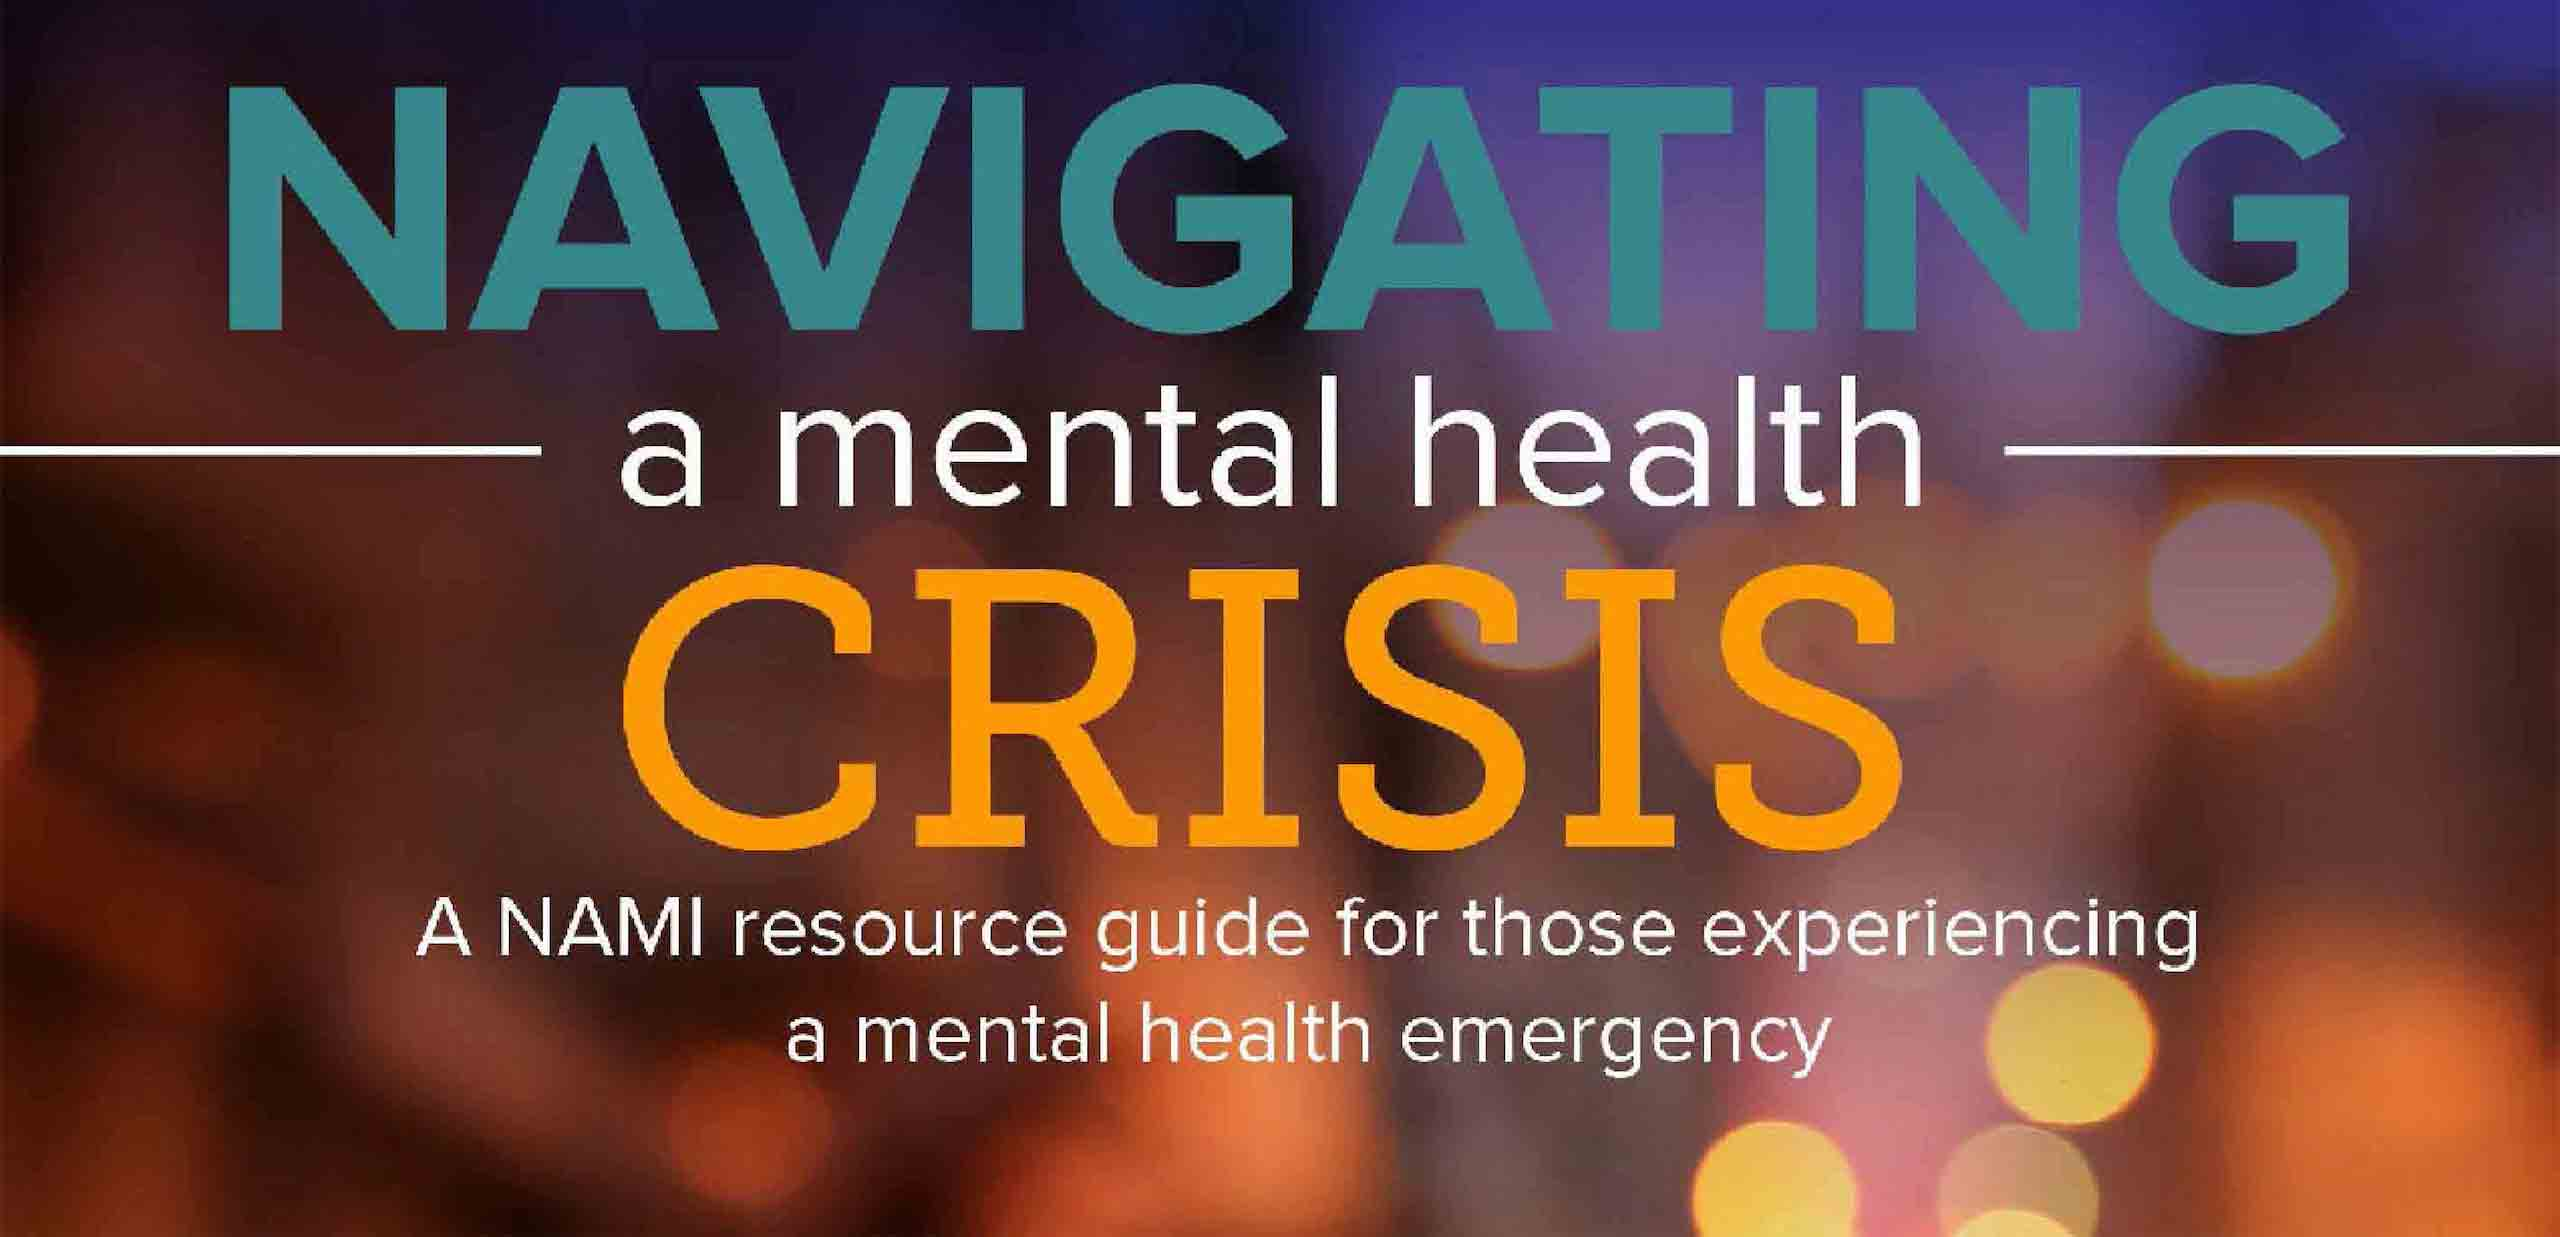 Navigating a Mental Health Crisis